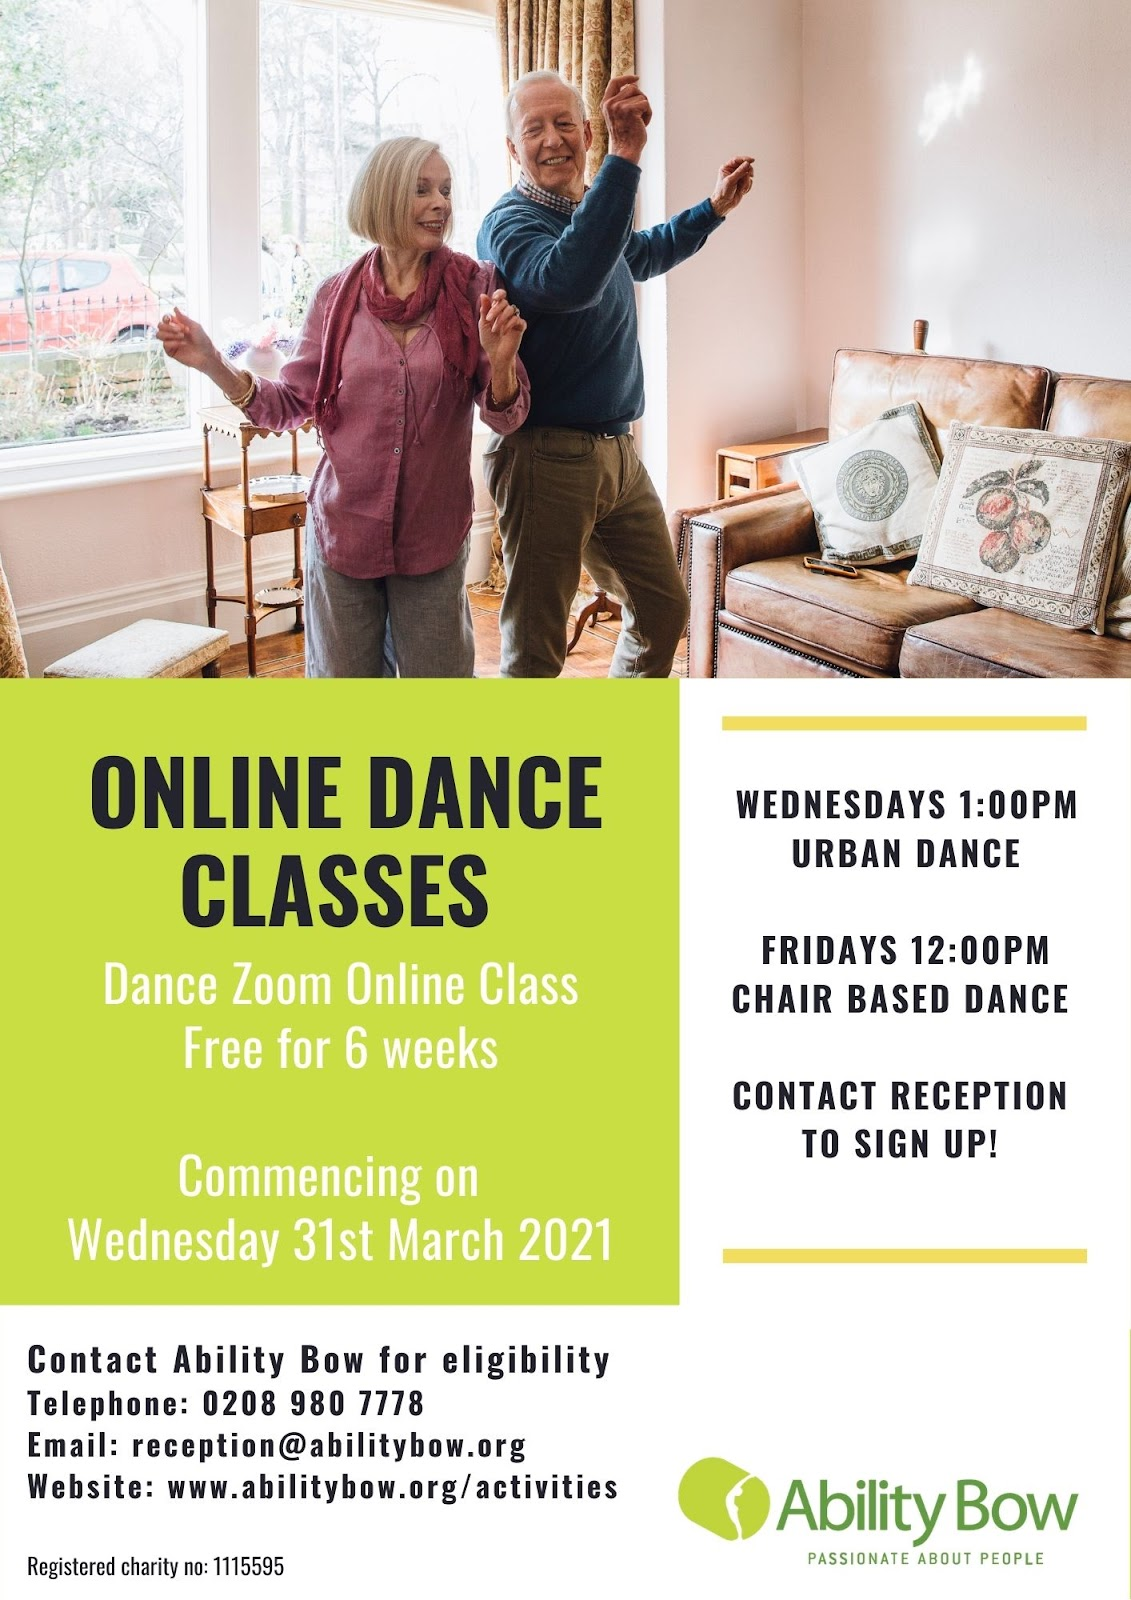 flyer for online dance classes Fridays 12pm chair based and Wednesdays 1pm standing - Dance Classes online